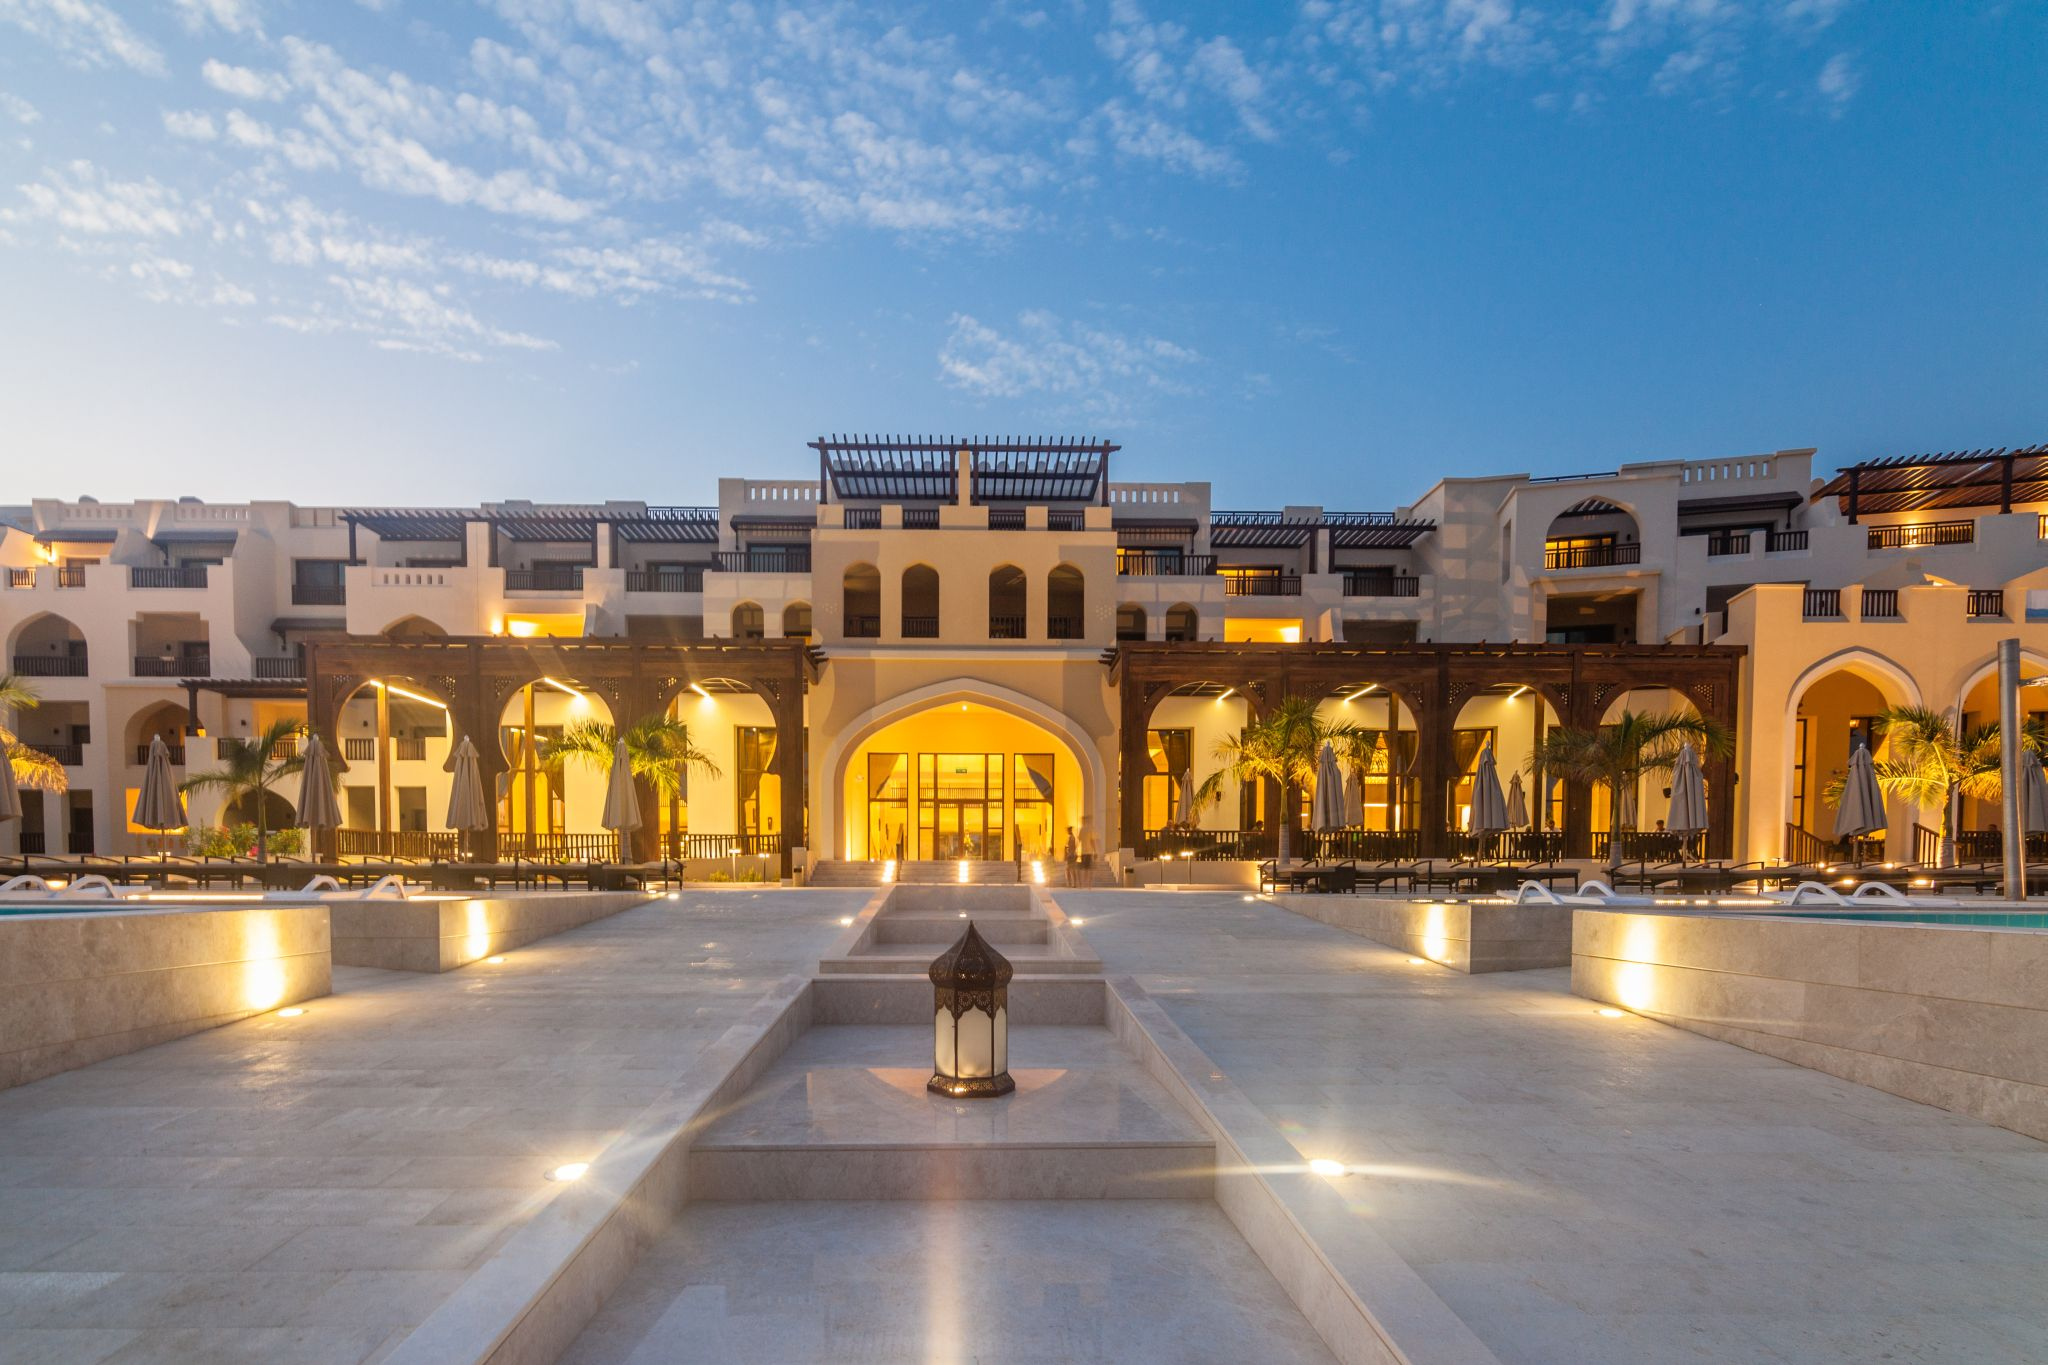 Fanar Hotel Residences First Class Salalah Oman Hotels Gds Reservation Codes Travel Weekly